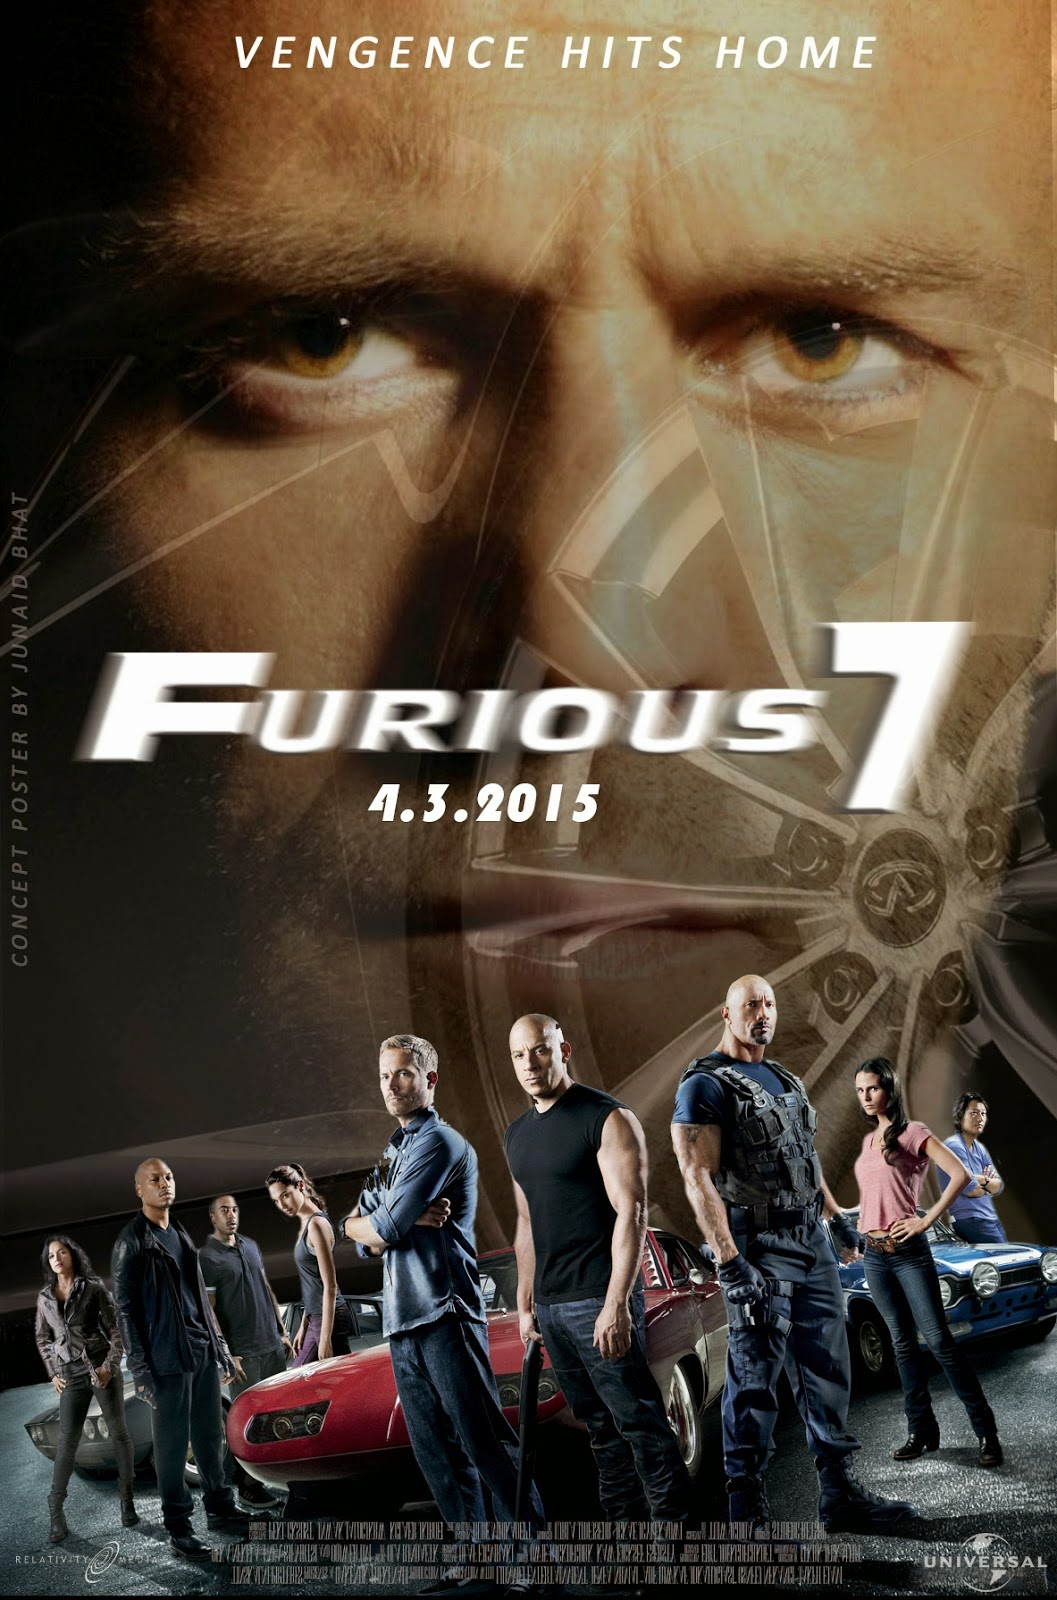 fast and furious 7 full movie for free download